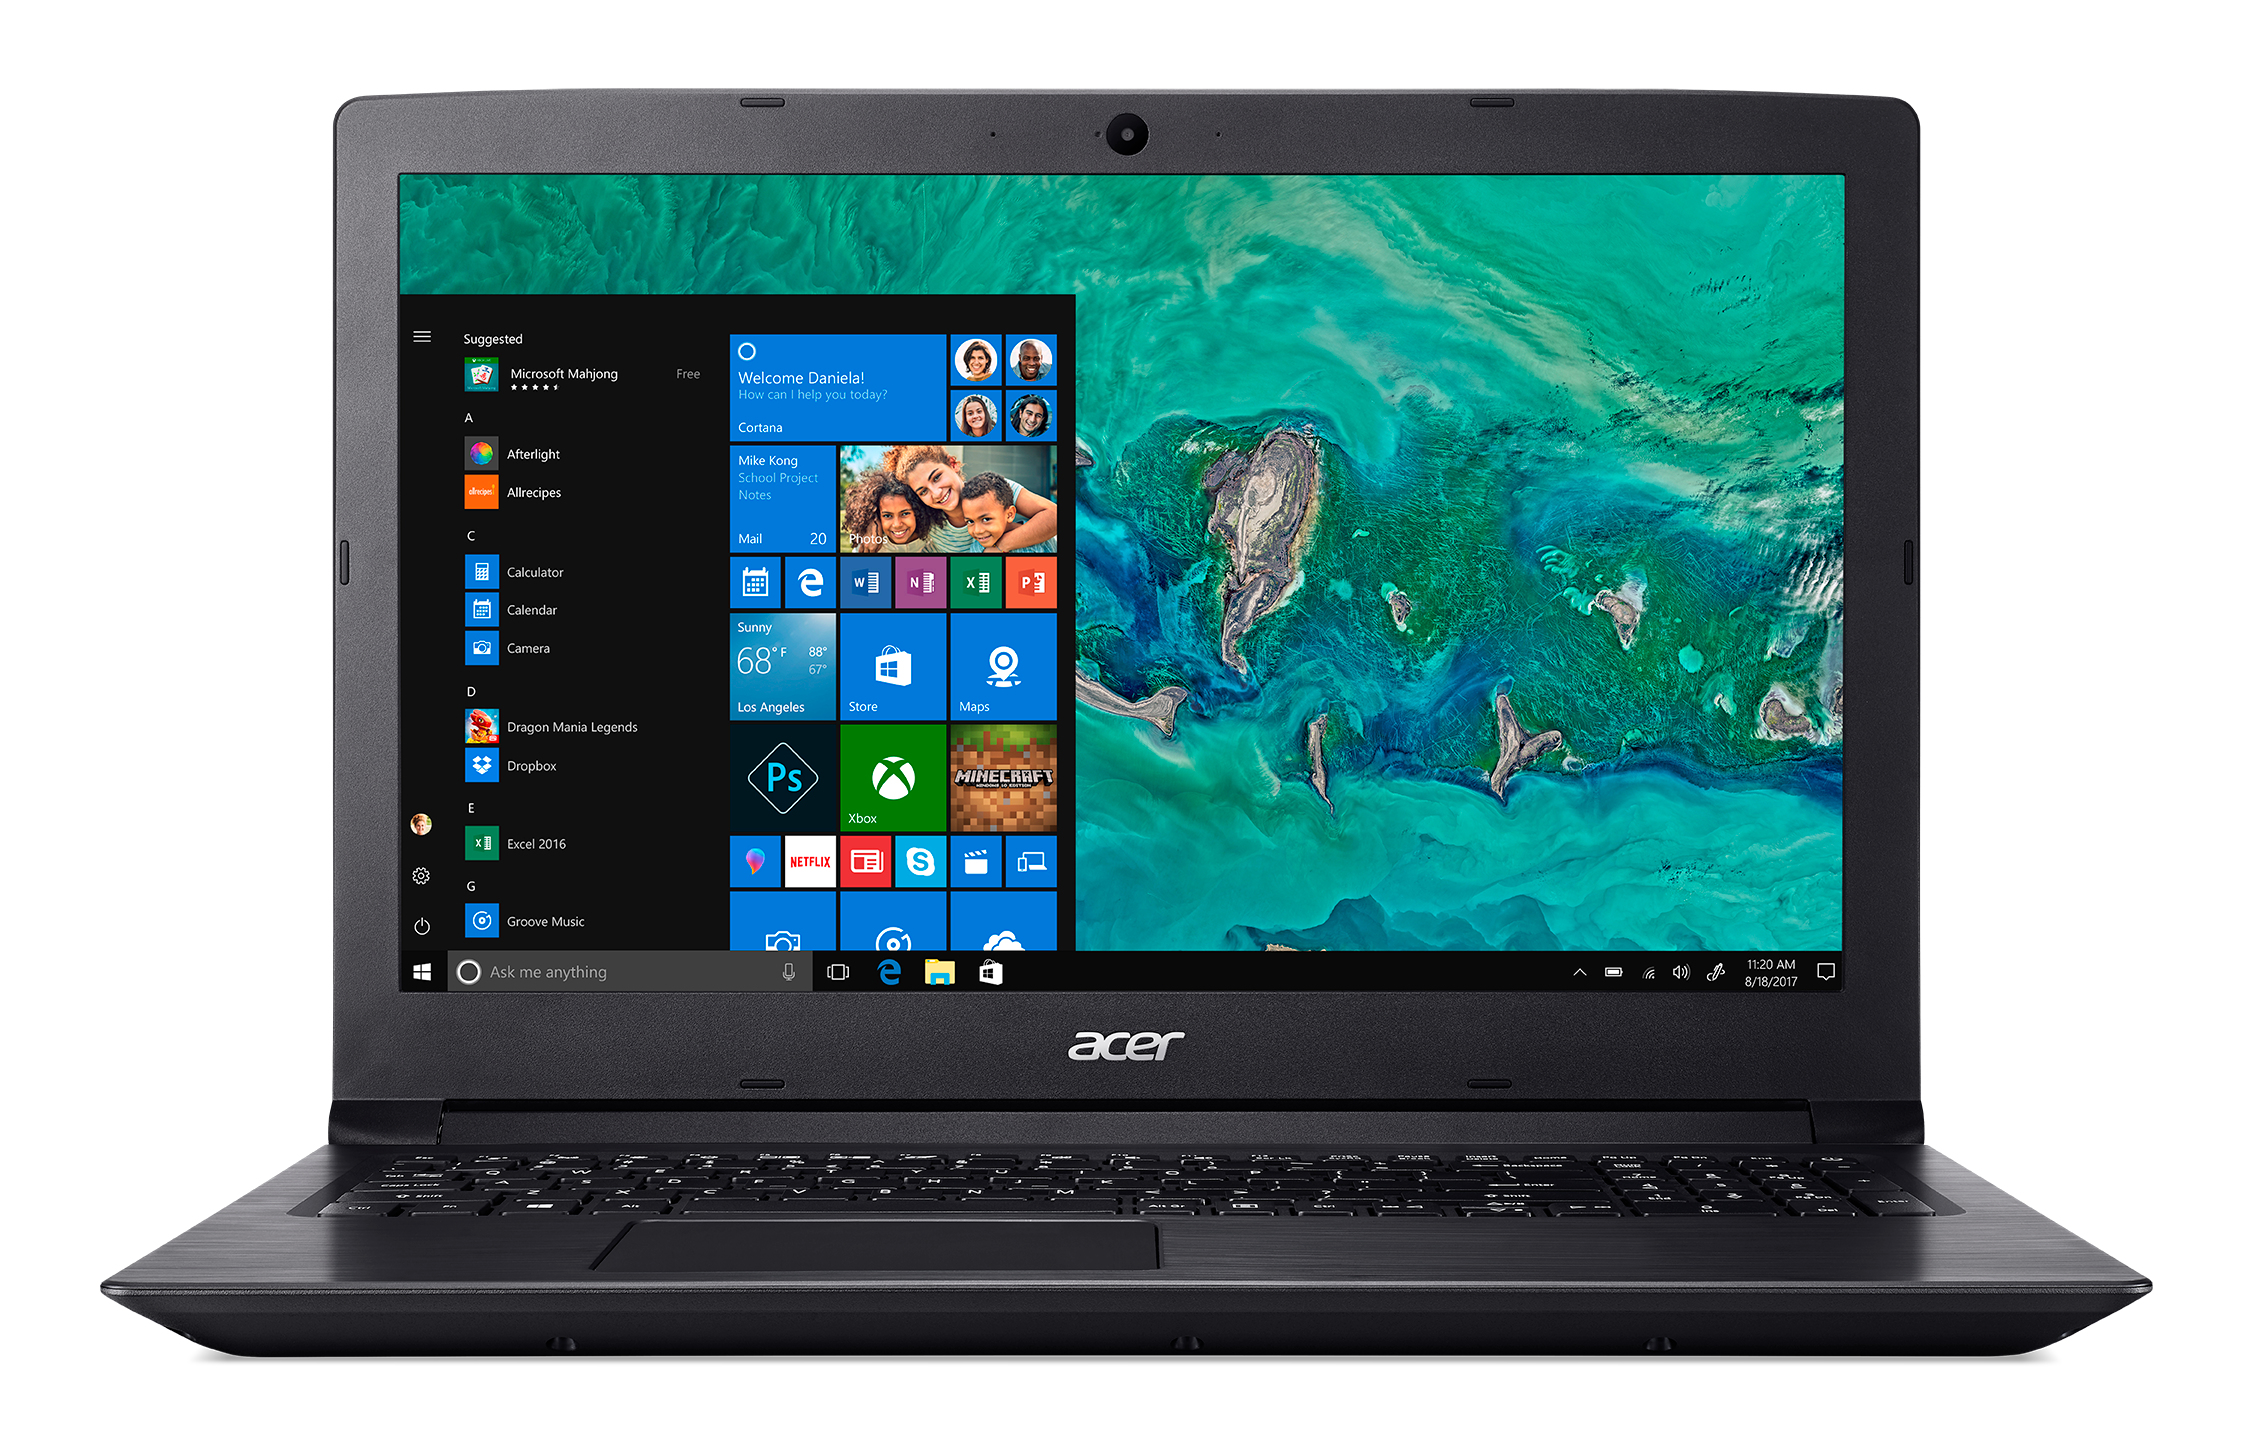 Acer Aspire 3 A315-41G-R696, 15.6inch FHD ComfyView LED, AMD Ryzen 5 2500U, 8GB, 256GB SSD +1TB, AMD Radeon 530X ,WLAN ac/b/g/n +BT, Win10Home, QWERTY